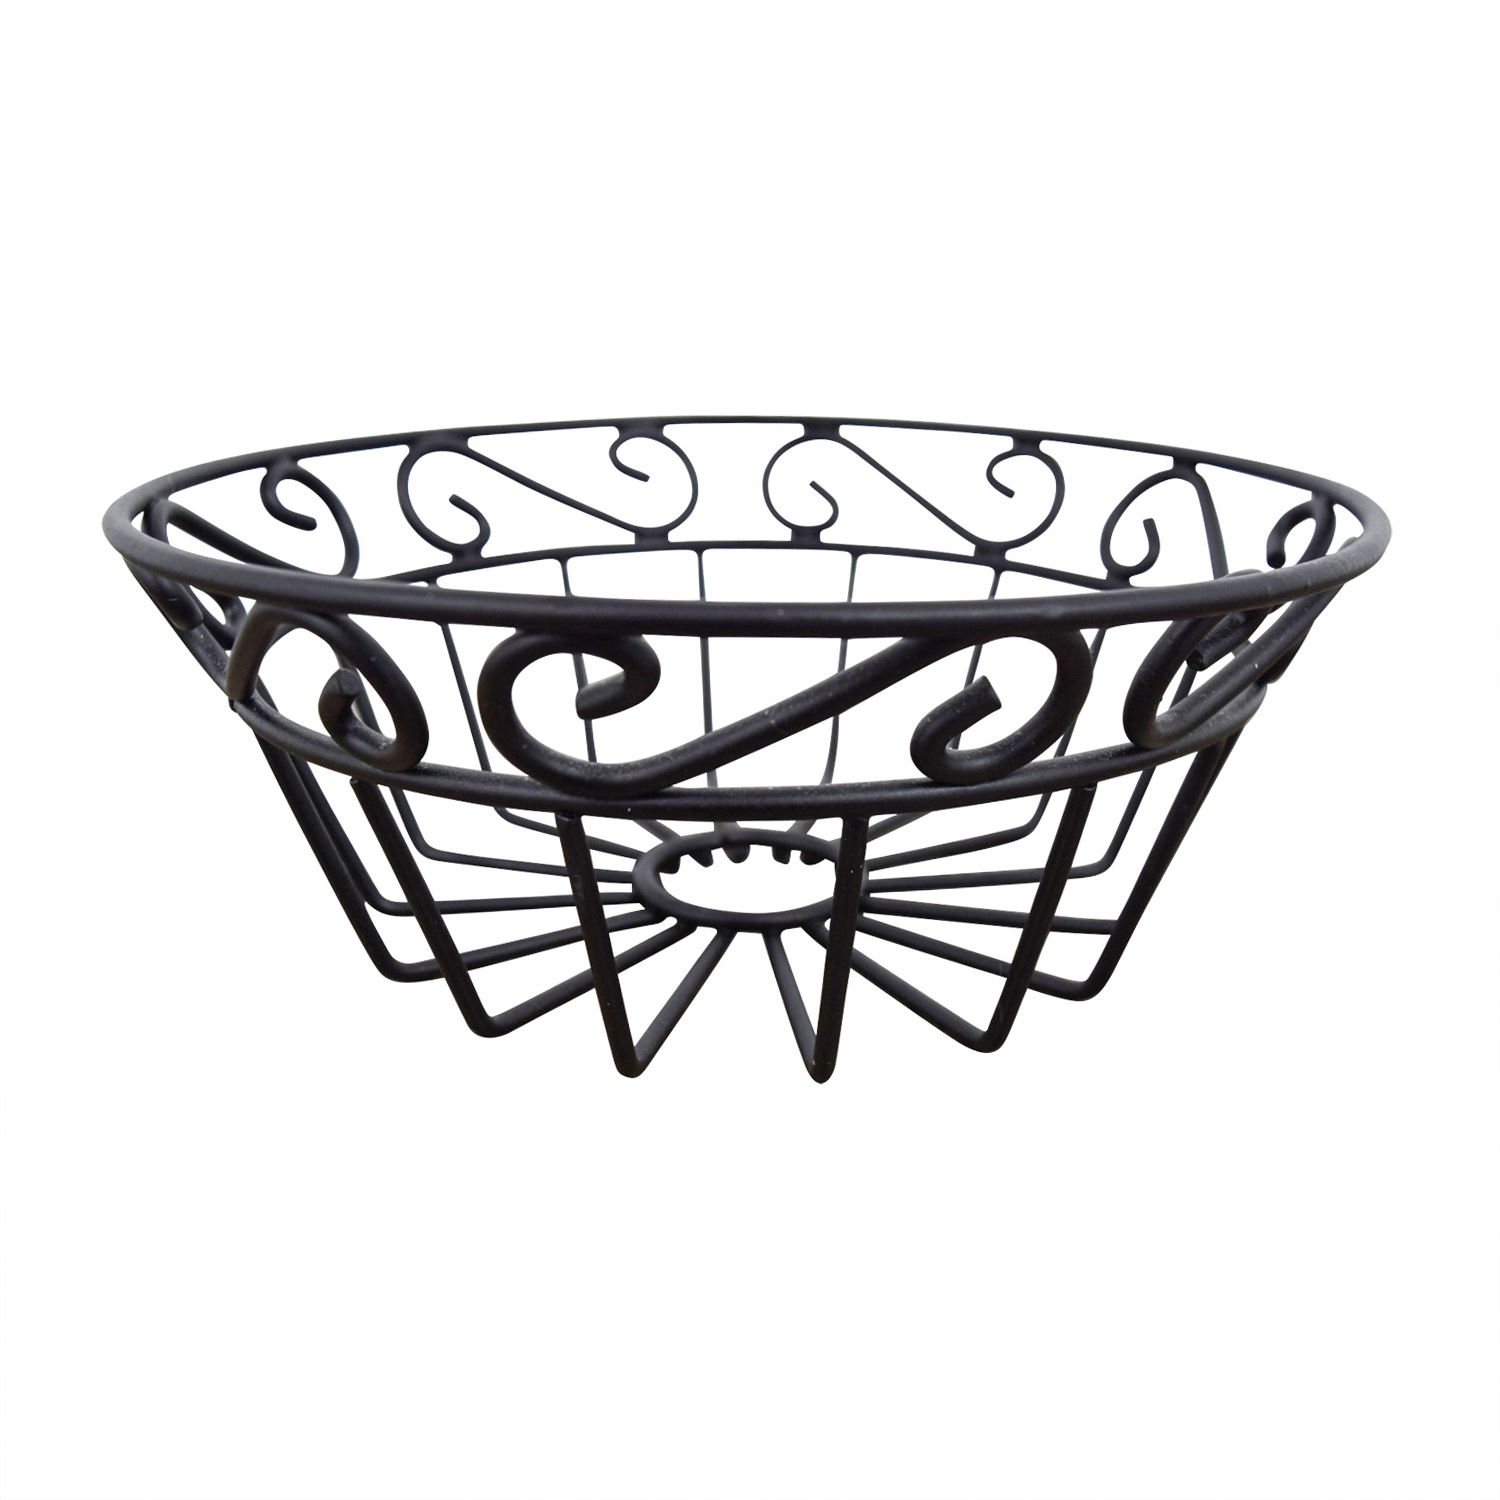 Macys Black Metal Fruit Bowl sale